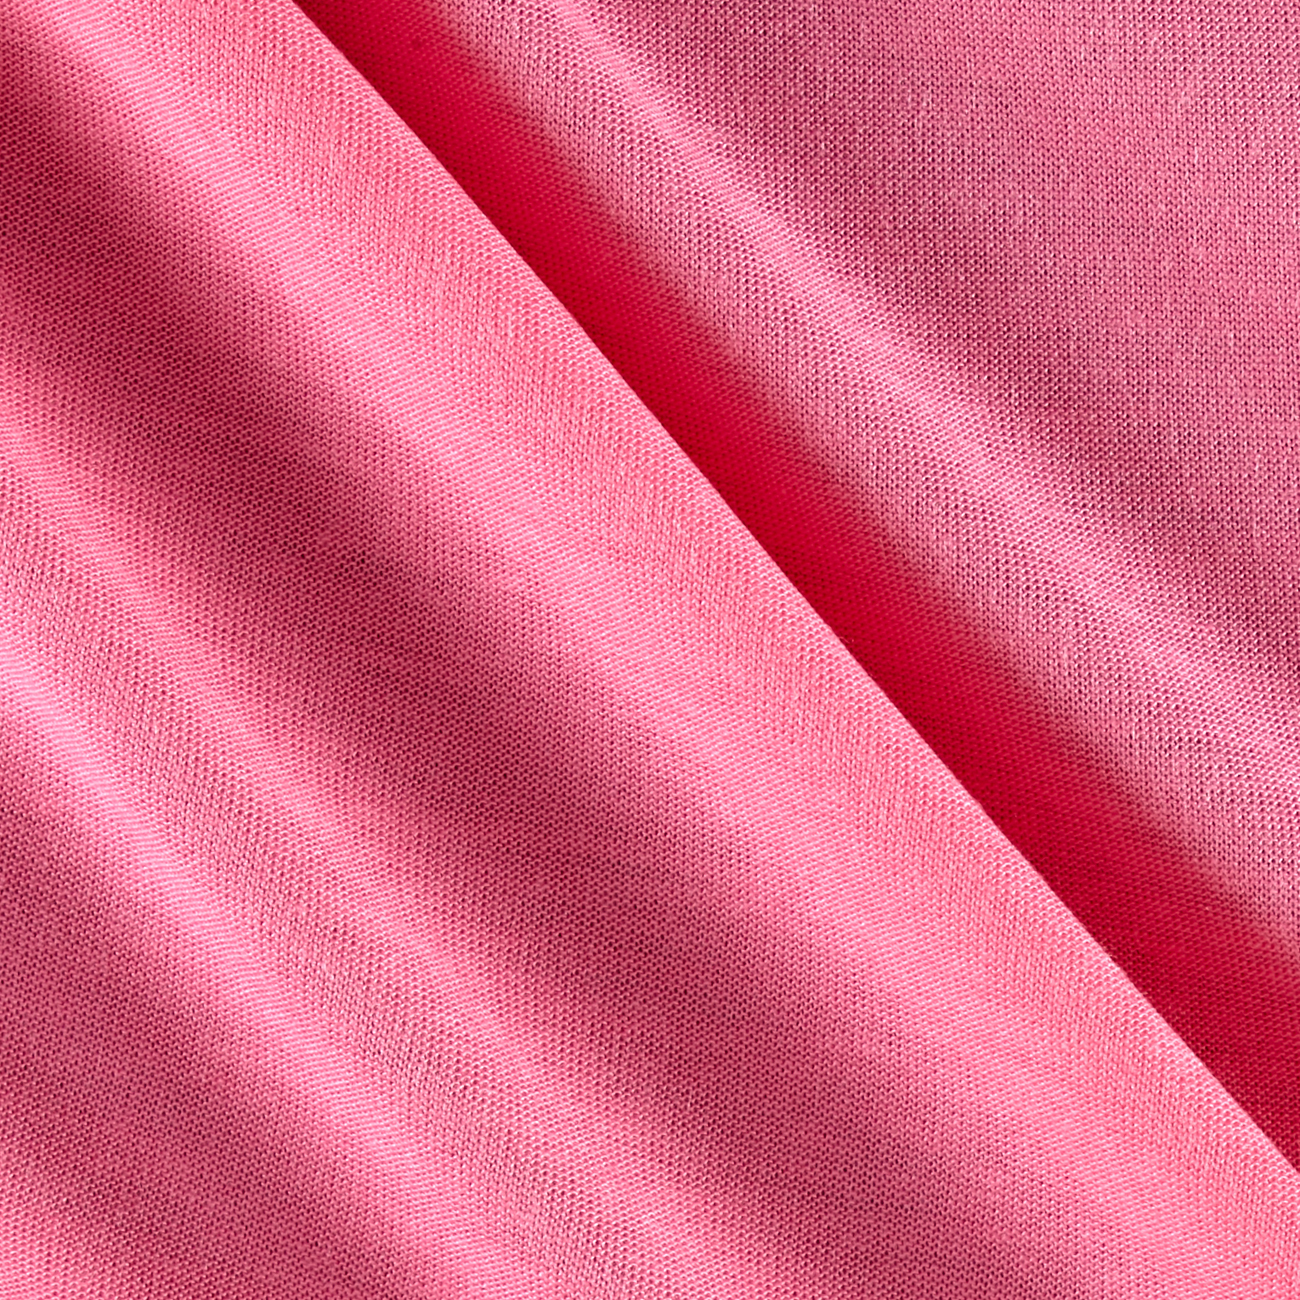 Tencel Solid Knit Flamingo Pink Fabric By The Yard